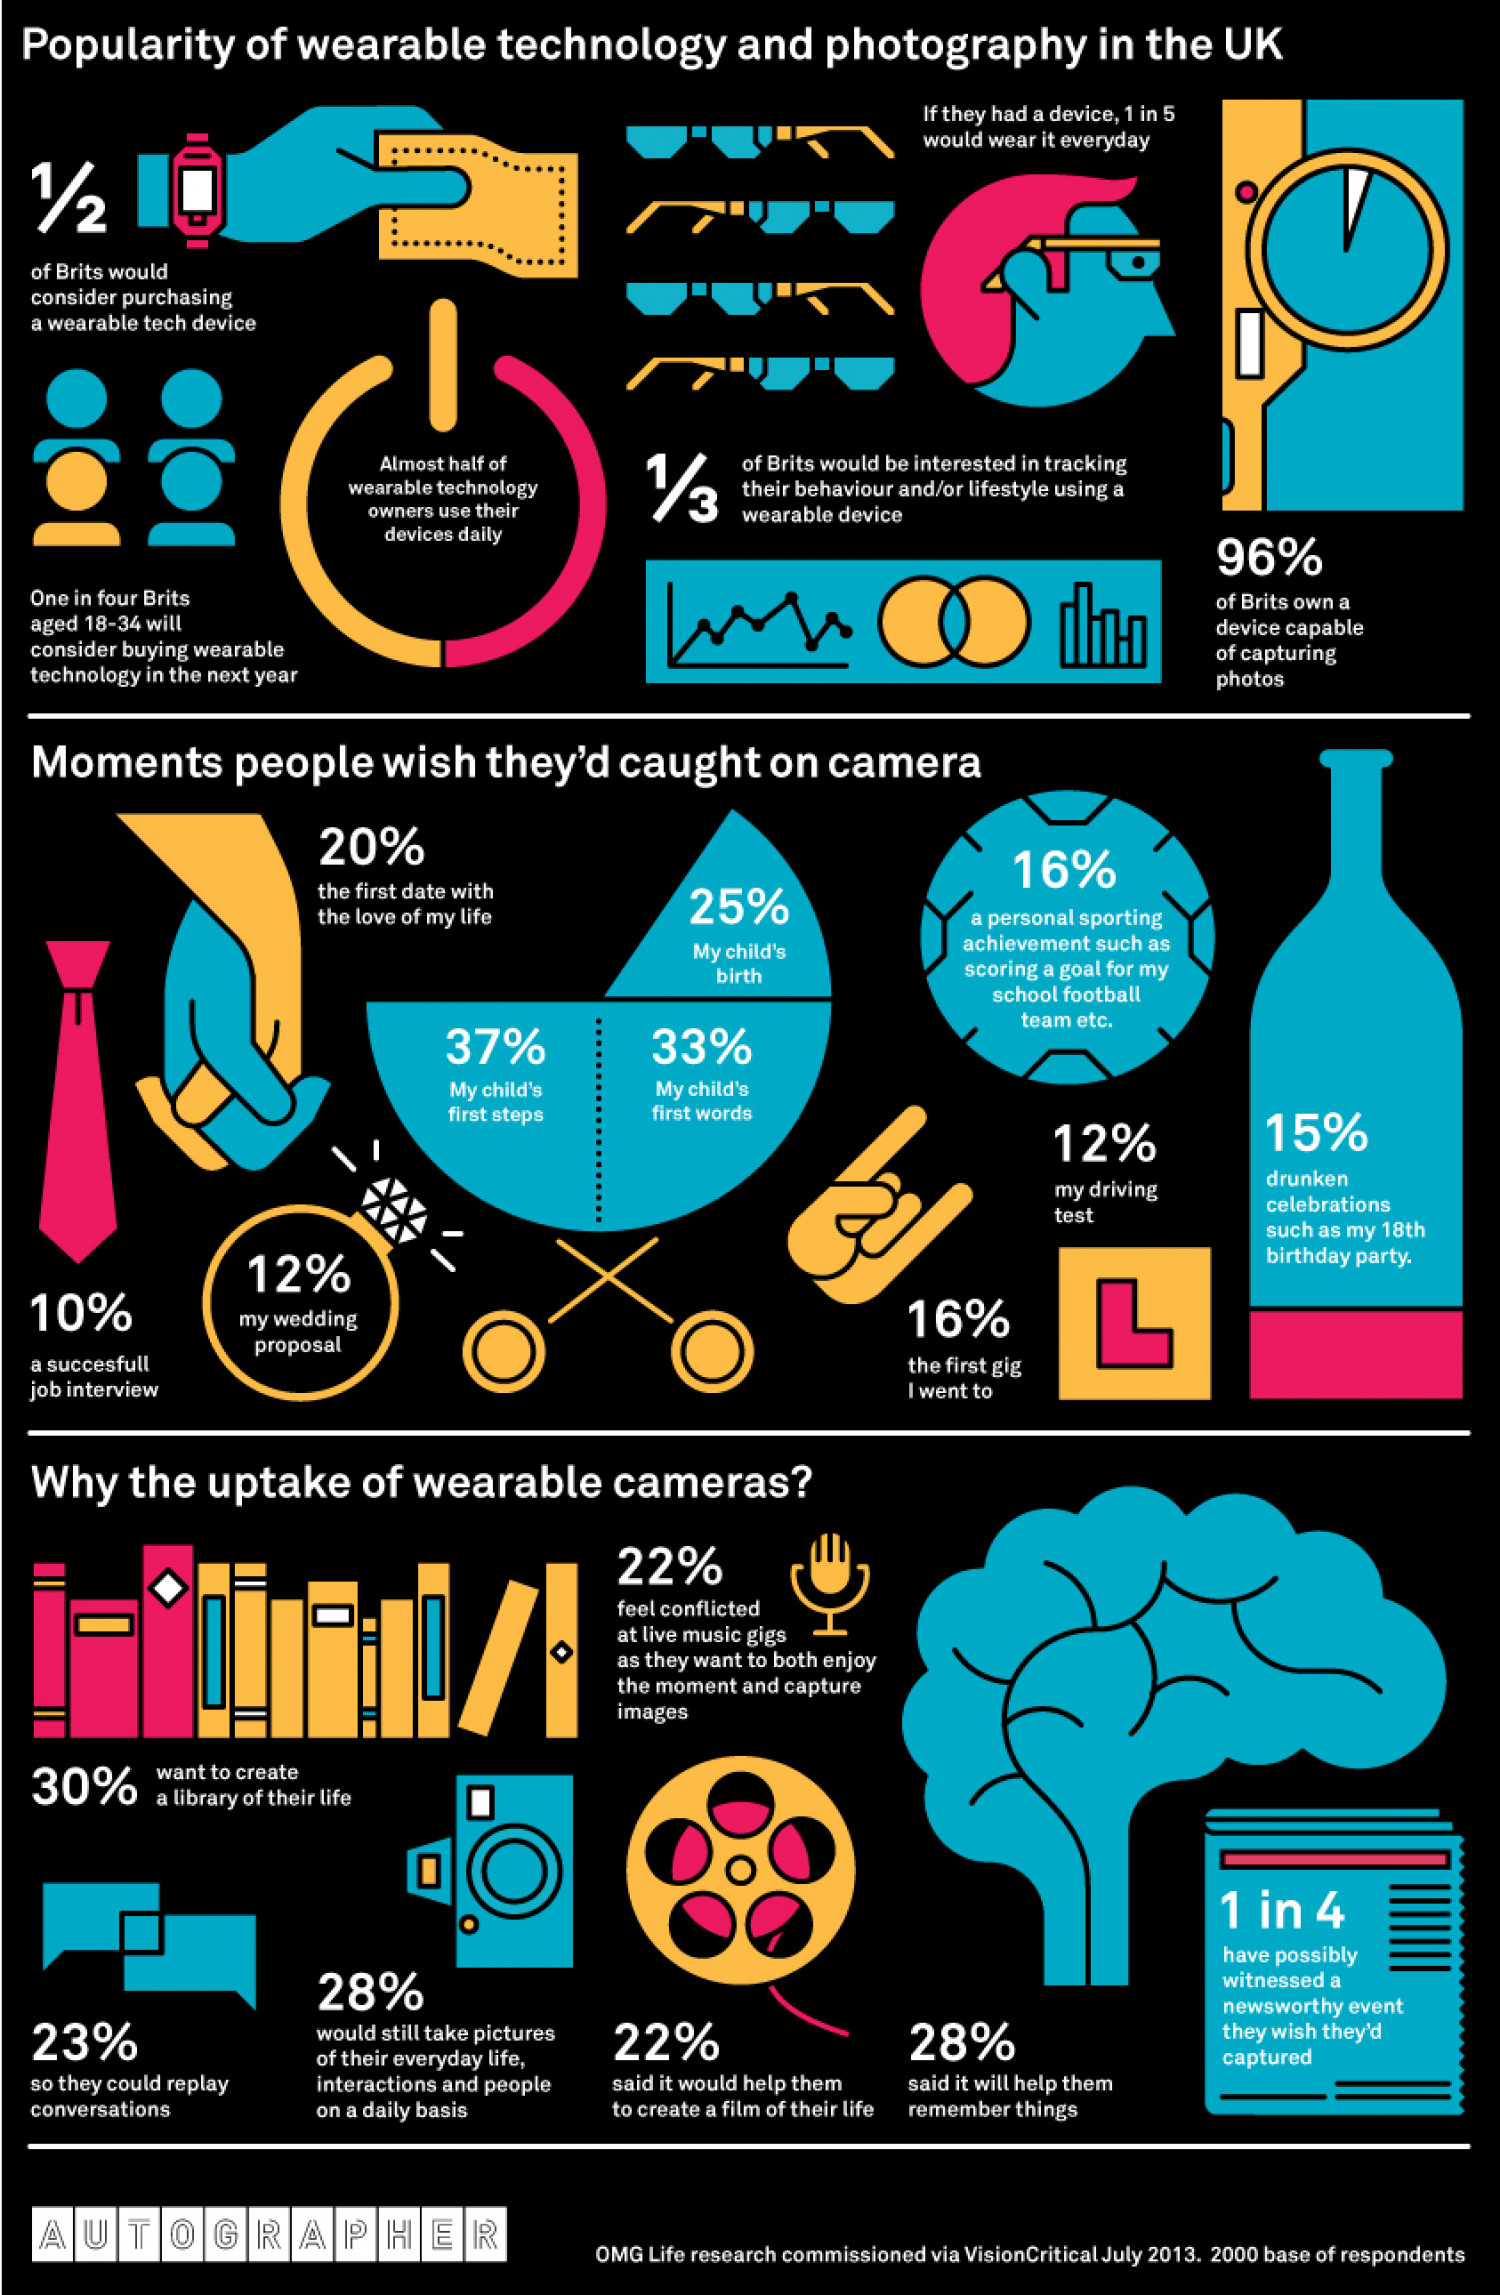 Wearable Technology and Photography - Autographer Infographic